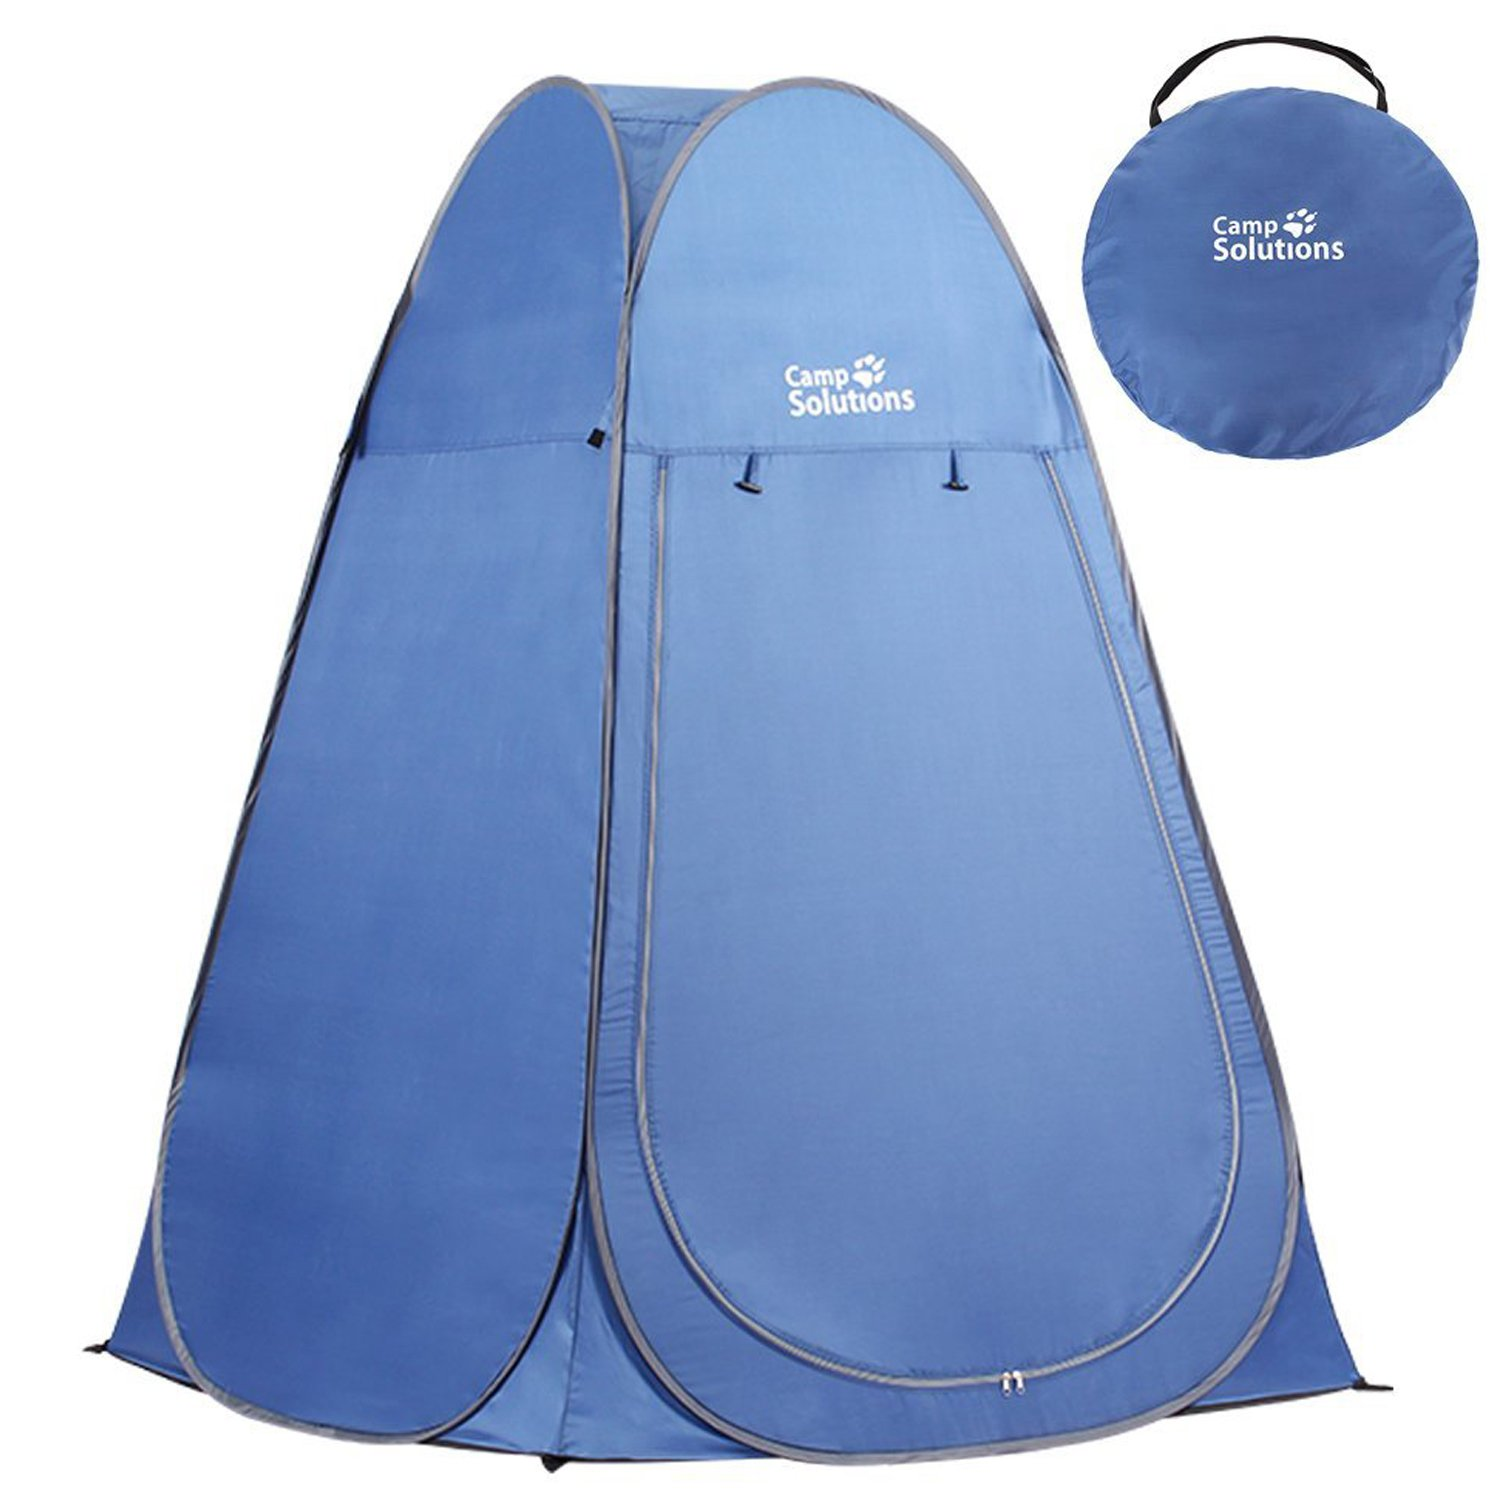 Camp Solutions Portable Pop Up Privacy Shelter Dressing Changing Privy Tent Cabana Screen Room Weight Bag for Camping Shower Fishing Bathing Toilet Beach Park, Carry Bag Included (Blue) by Camp Solutions